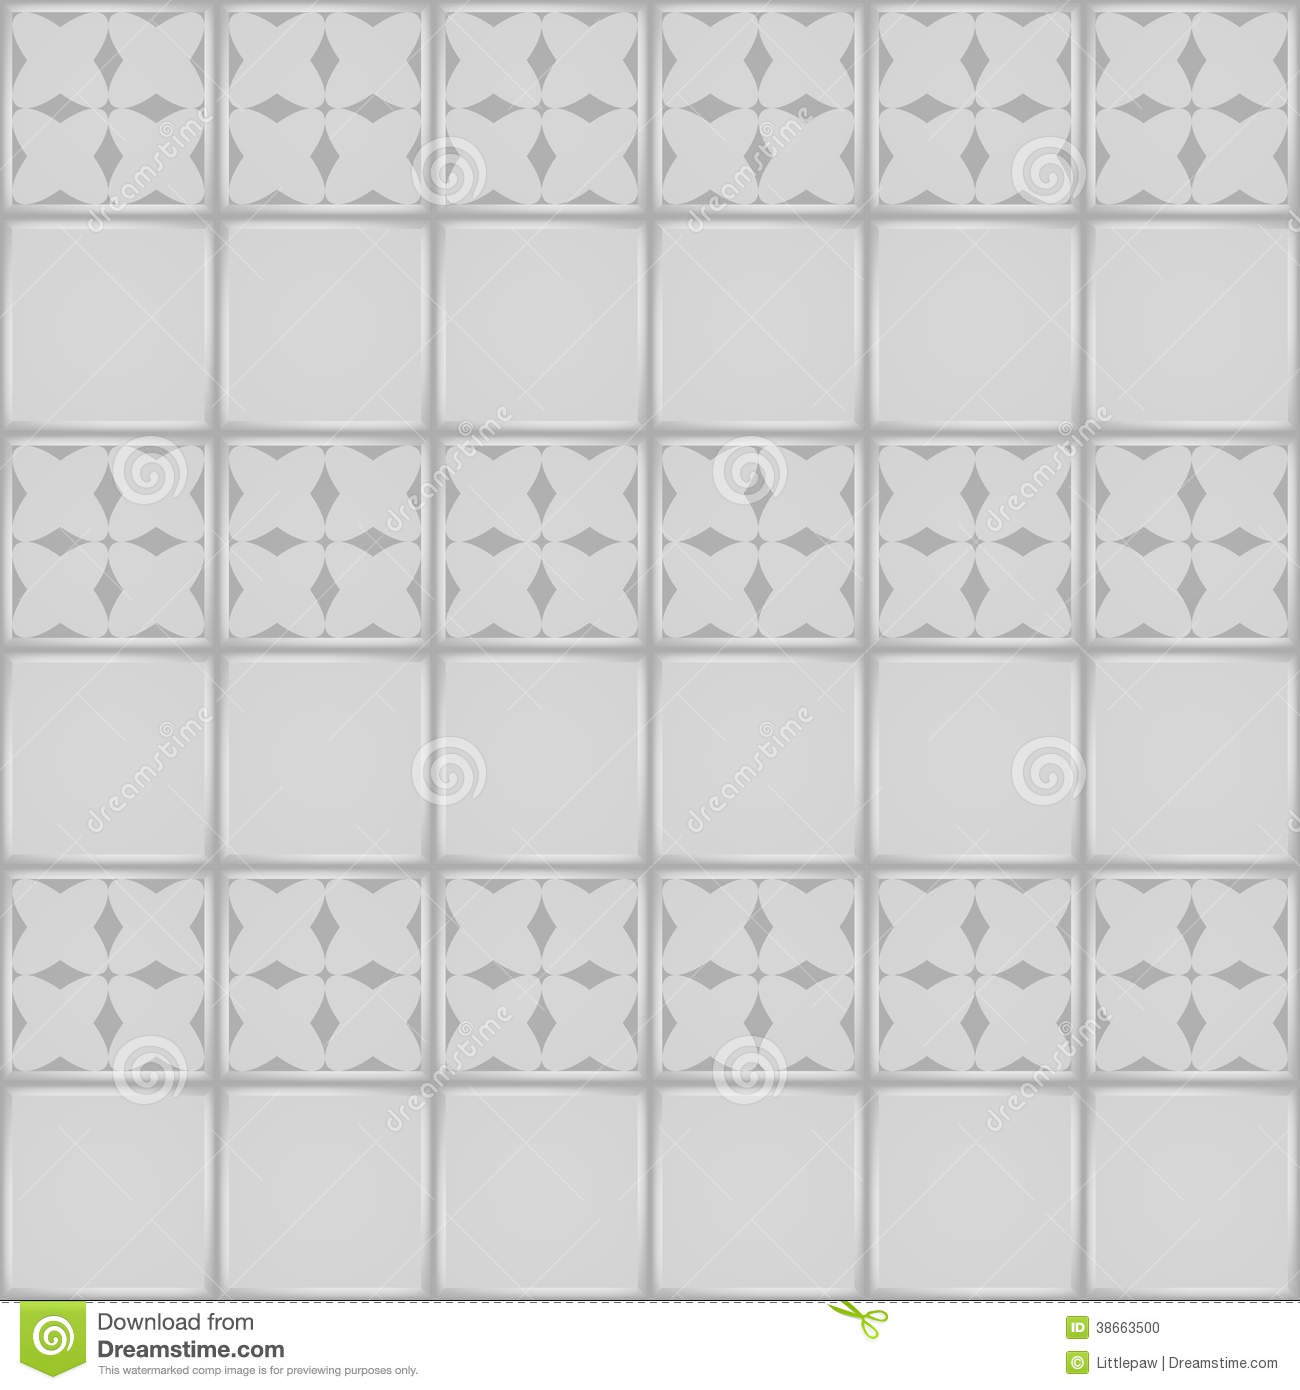 Designer White Abstract Ceramic Wall Tile Pack Of 8 L: White Ceramic Tile With Ornament Seamless Pattern Stock